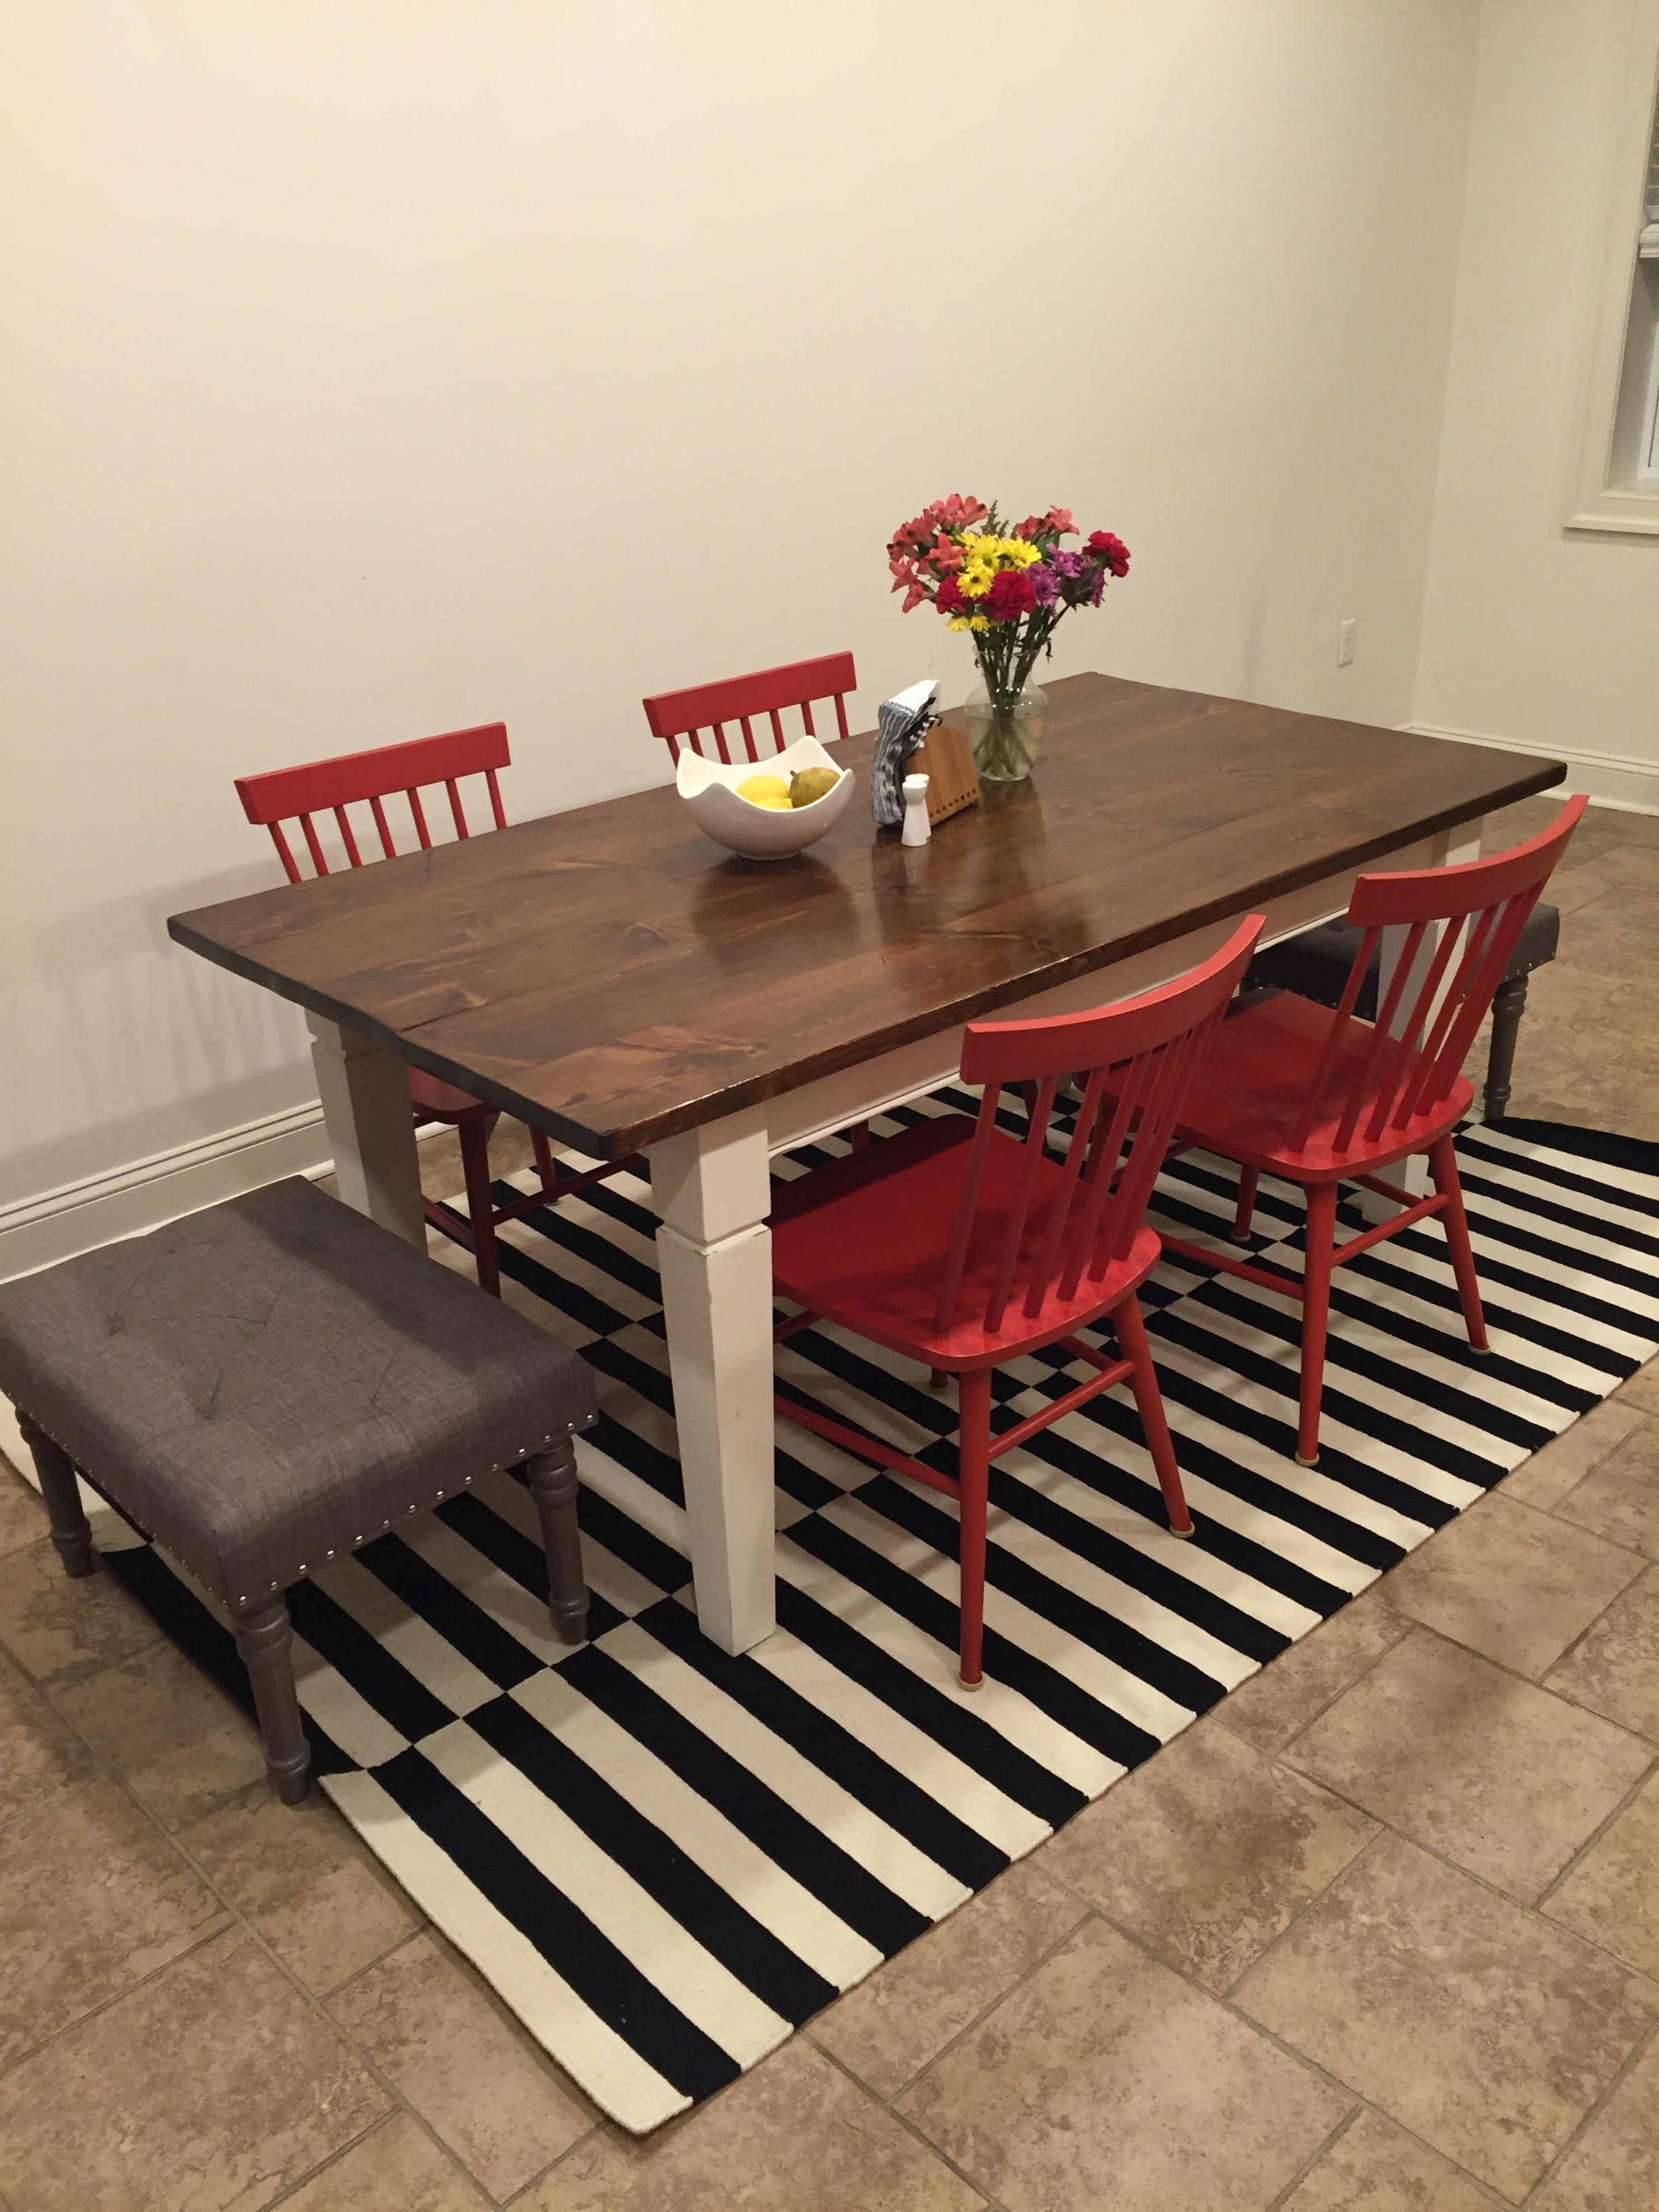 Refinished Solid Wood Table Chairs, Home Goods Chairs Dining Room